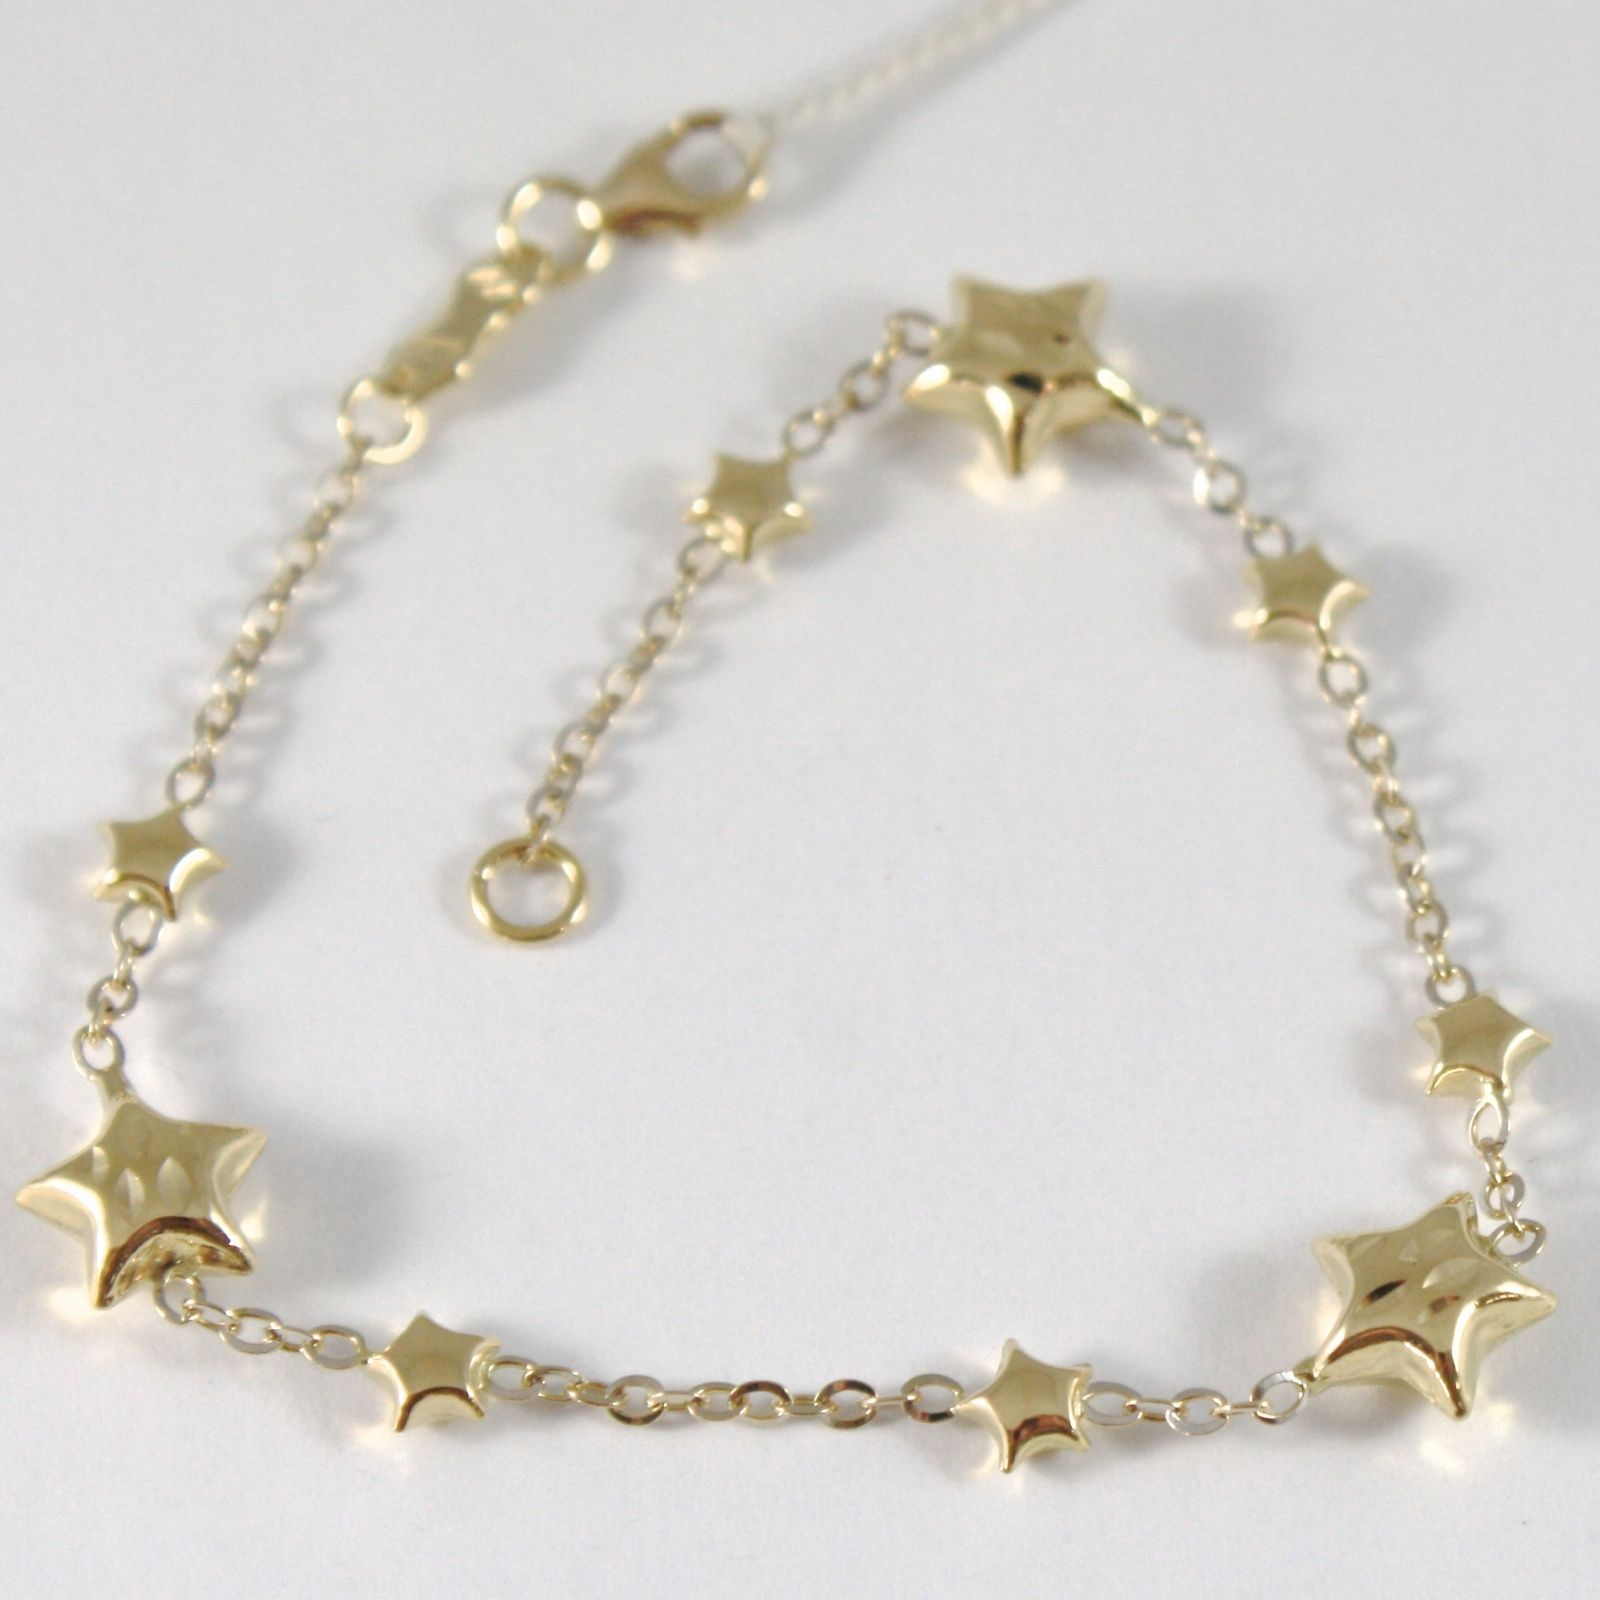 BRACELET YELLOW GOLD WHITE 750 18K WITH STARS ROUNDED, 17.5 CM LENGTH